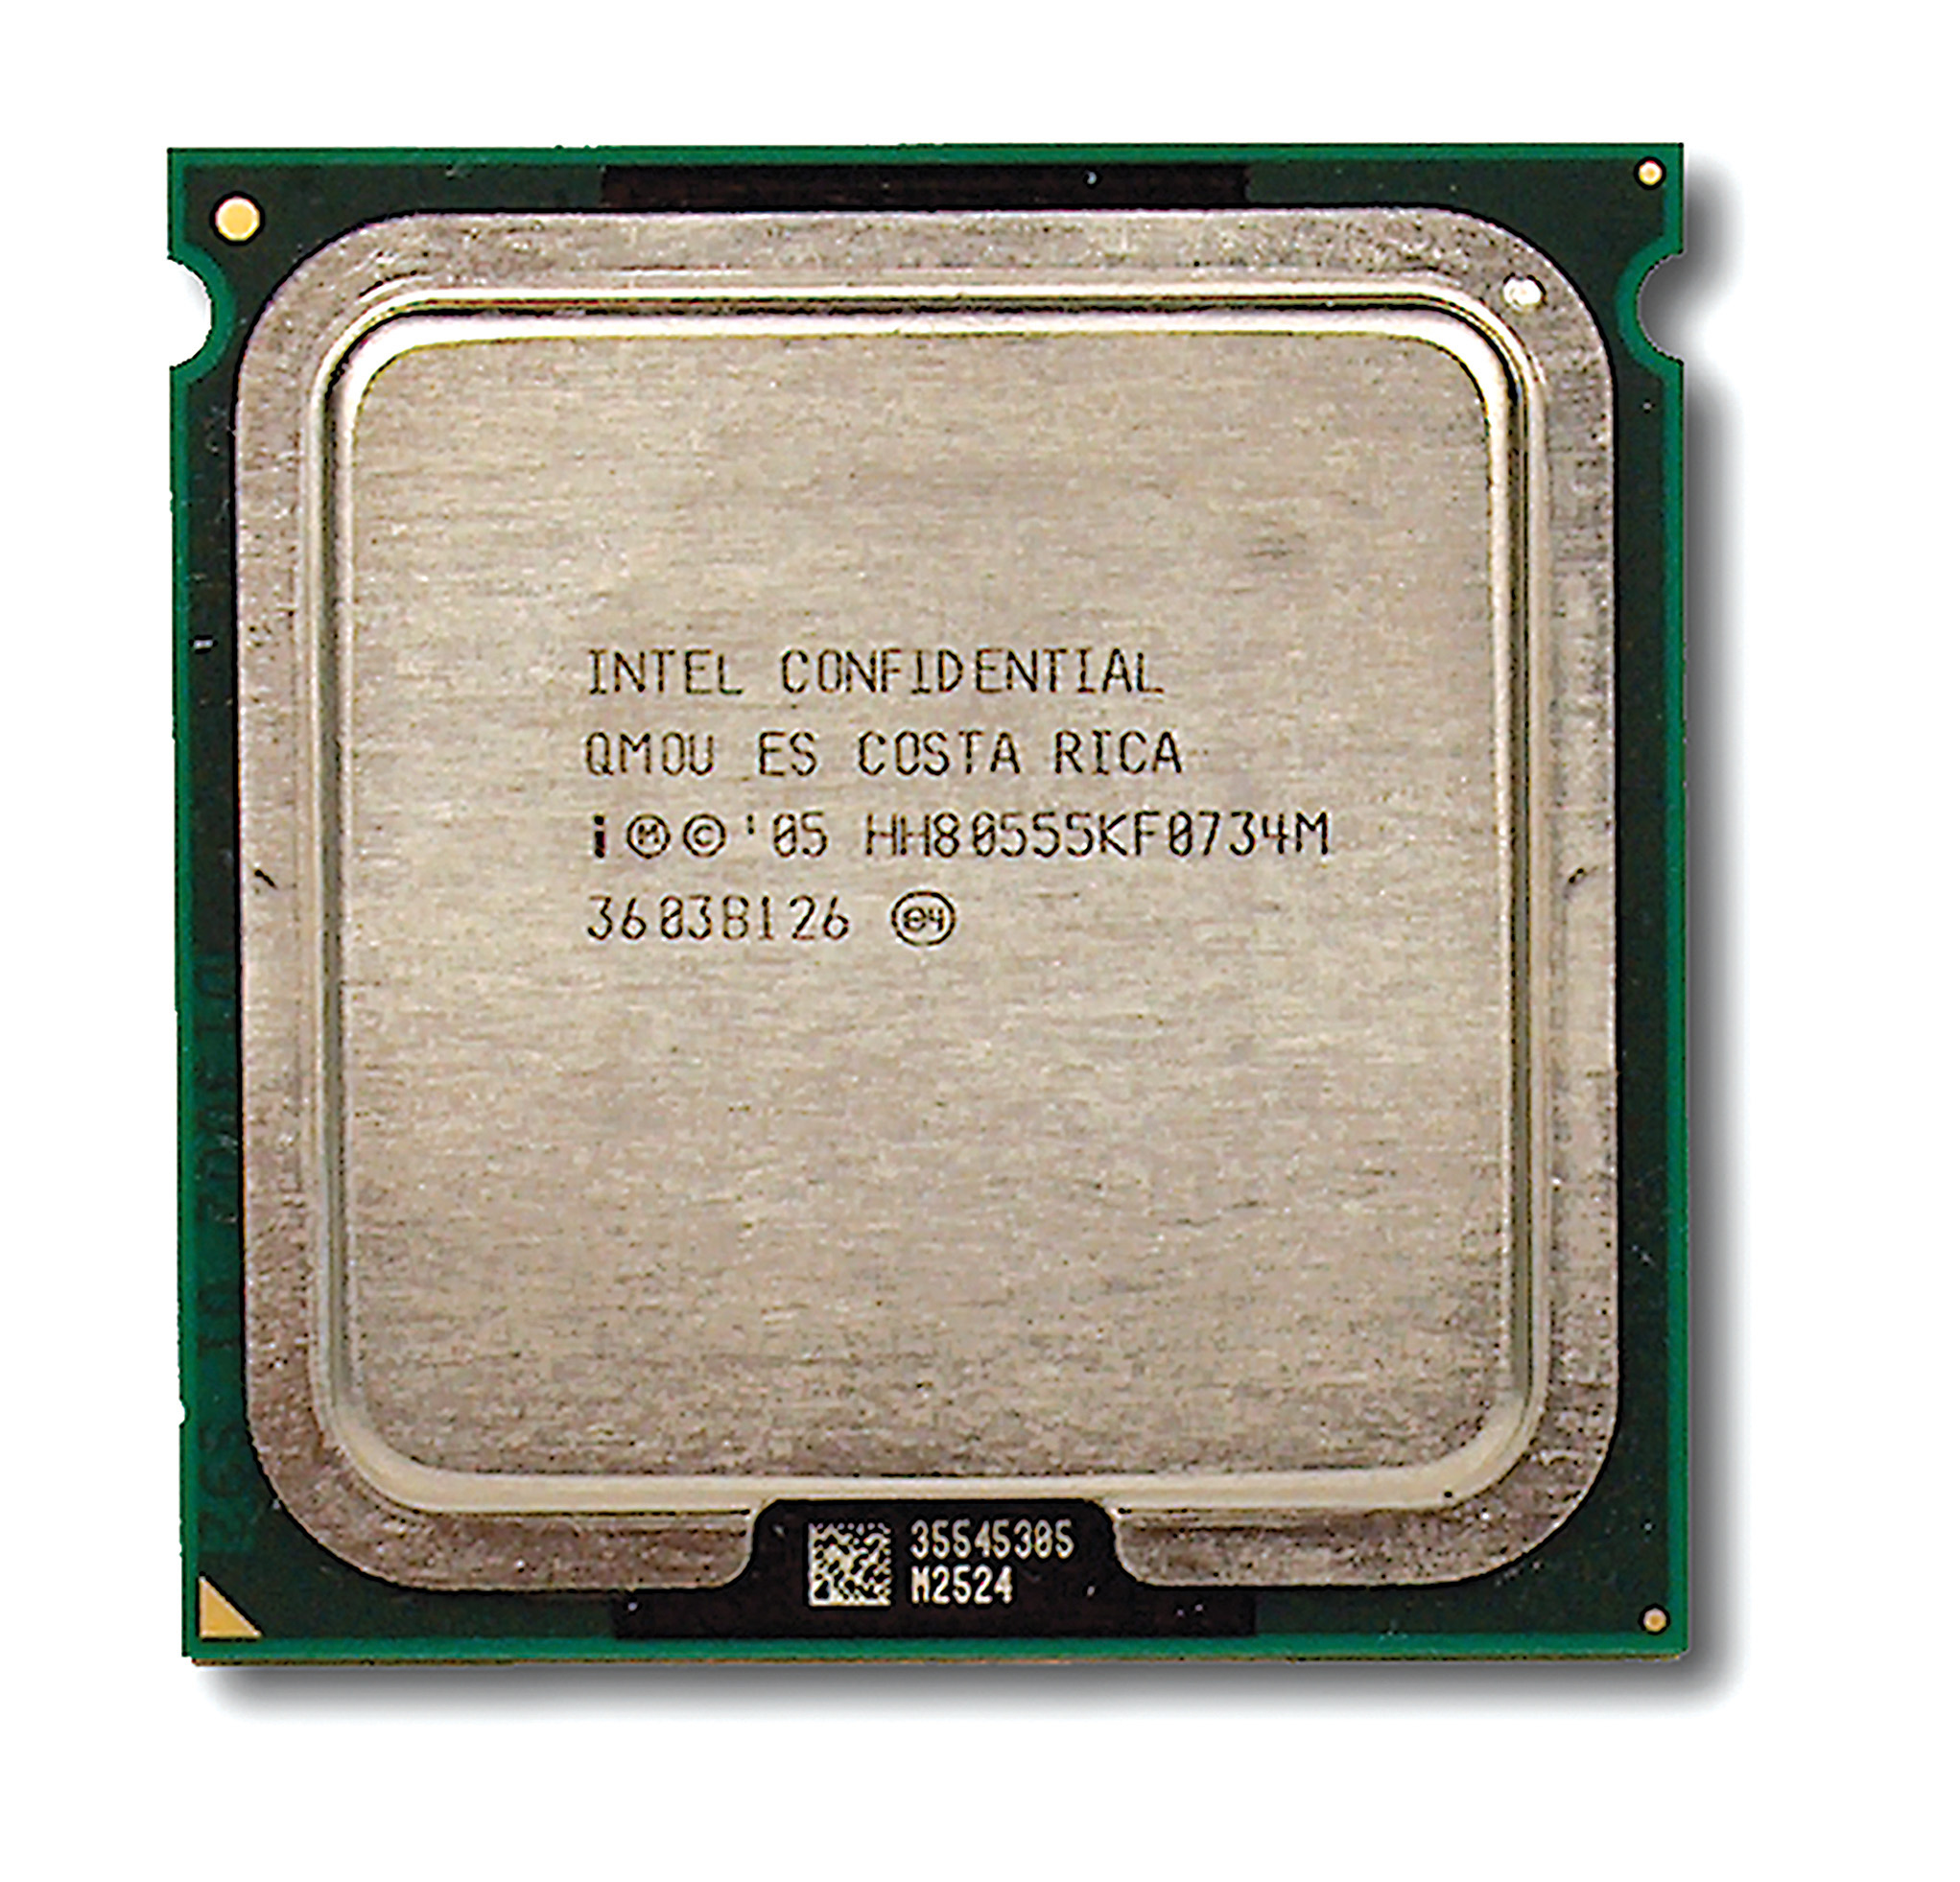 HP Z840 Xeon E5-2620v3 2.4GHz 1866MHz 6 Core 2nd CPU